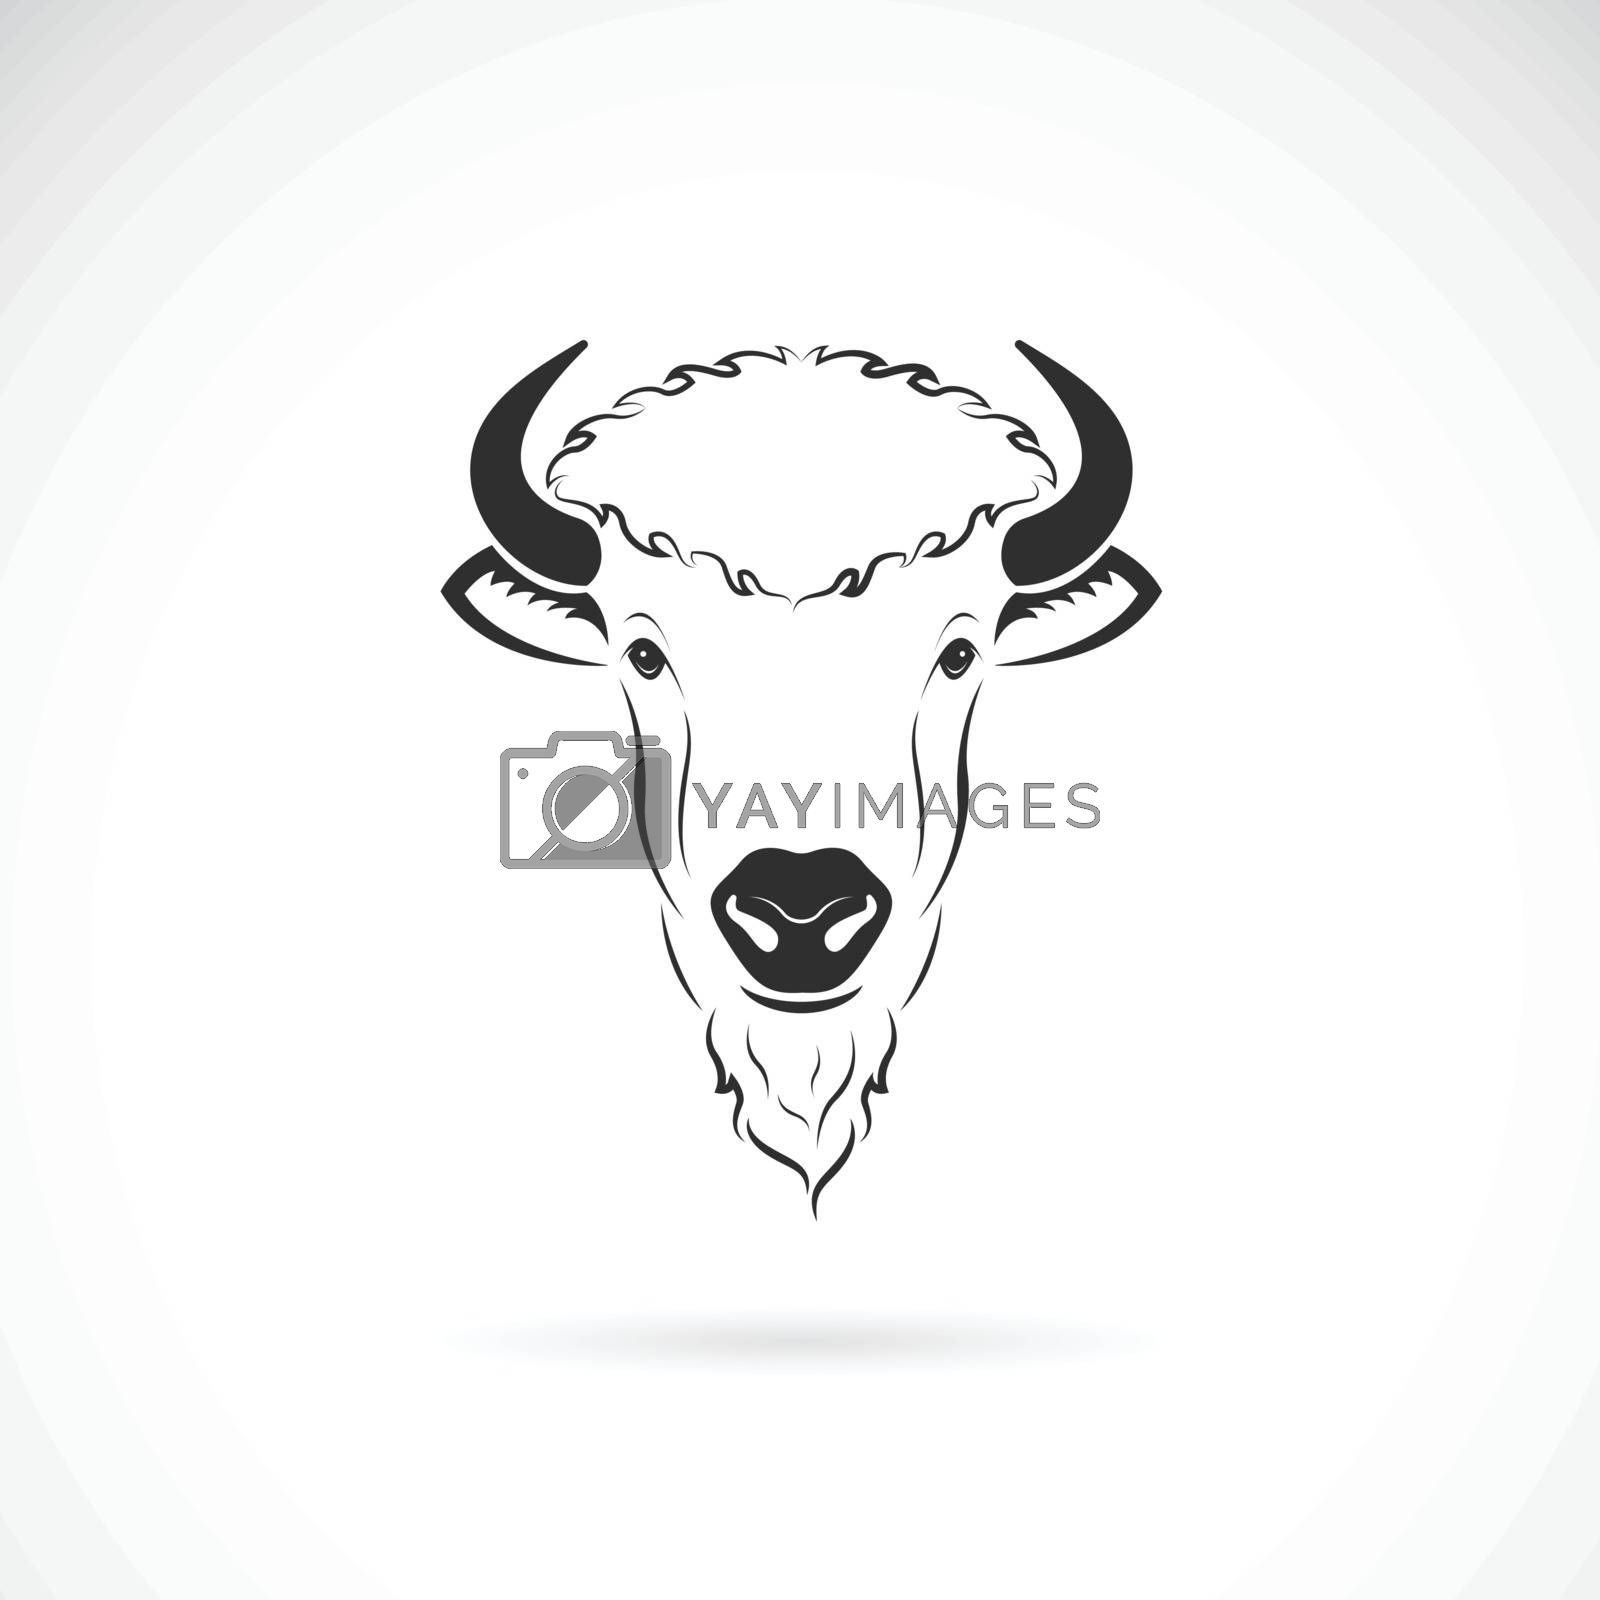 Vector of bison head design on white background. Wild Animals. Bisons logos or icons. Easy editable layered vector illustration.